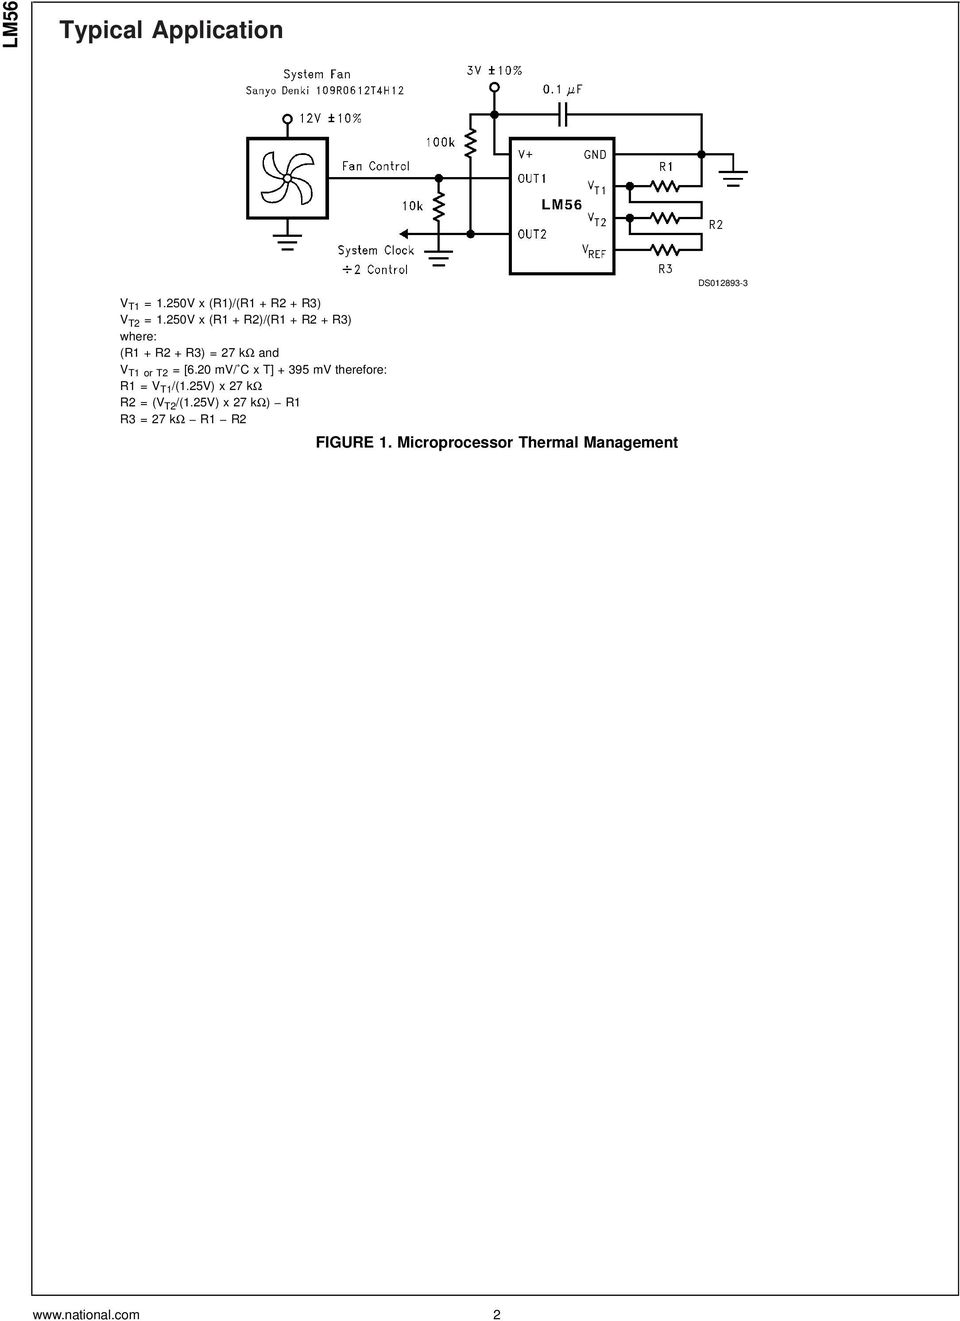 Lm56 Dual Output Low Power Thermostat Pdf Lm555 Lm555c Timer Circuits 20 Mv C X T 395 Therefore R1v T1